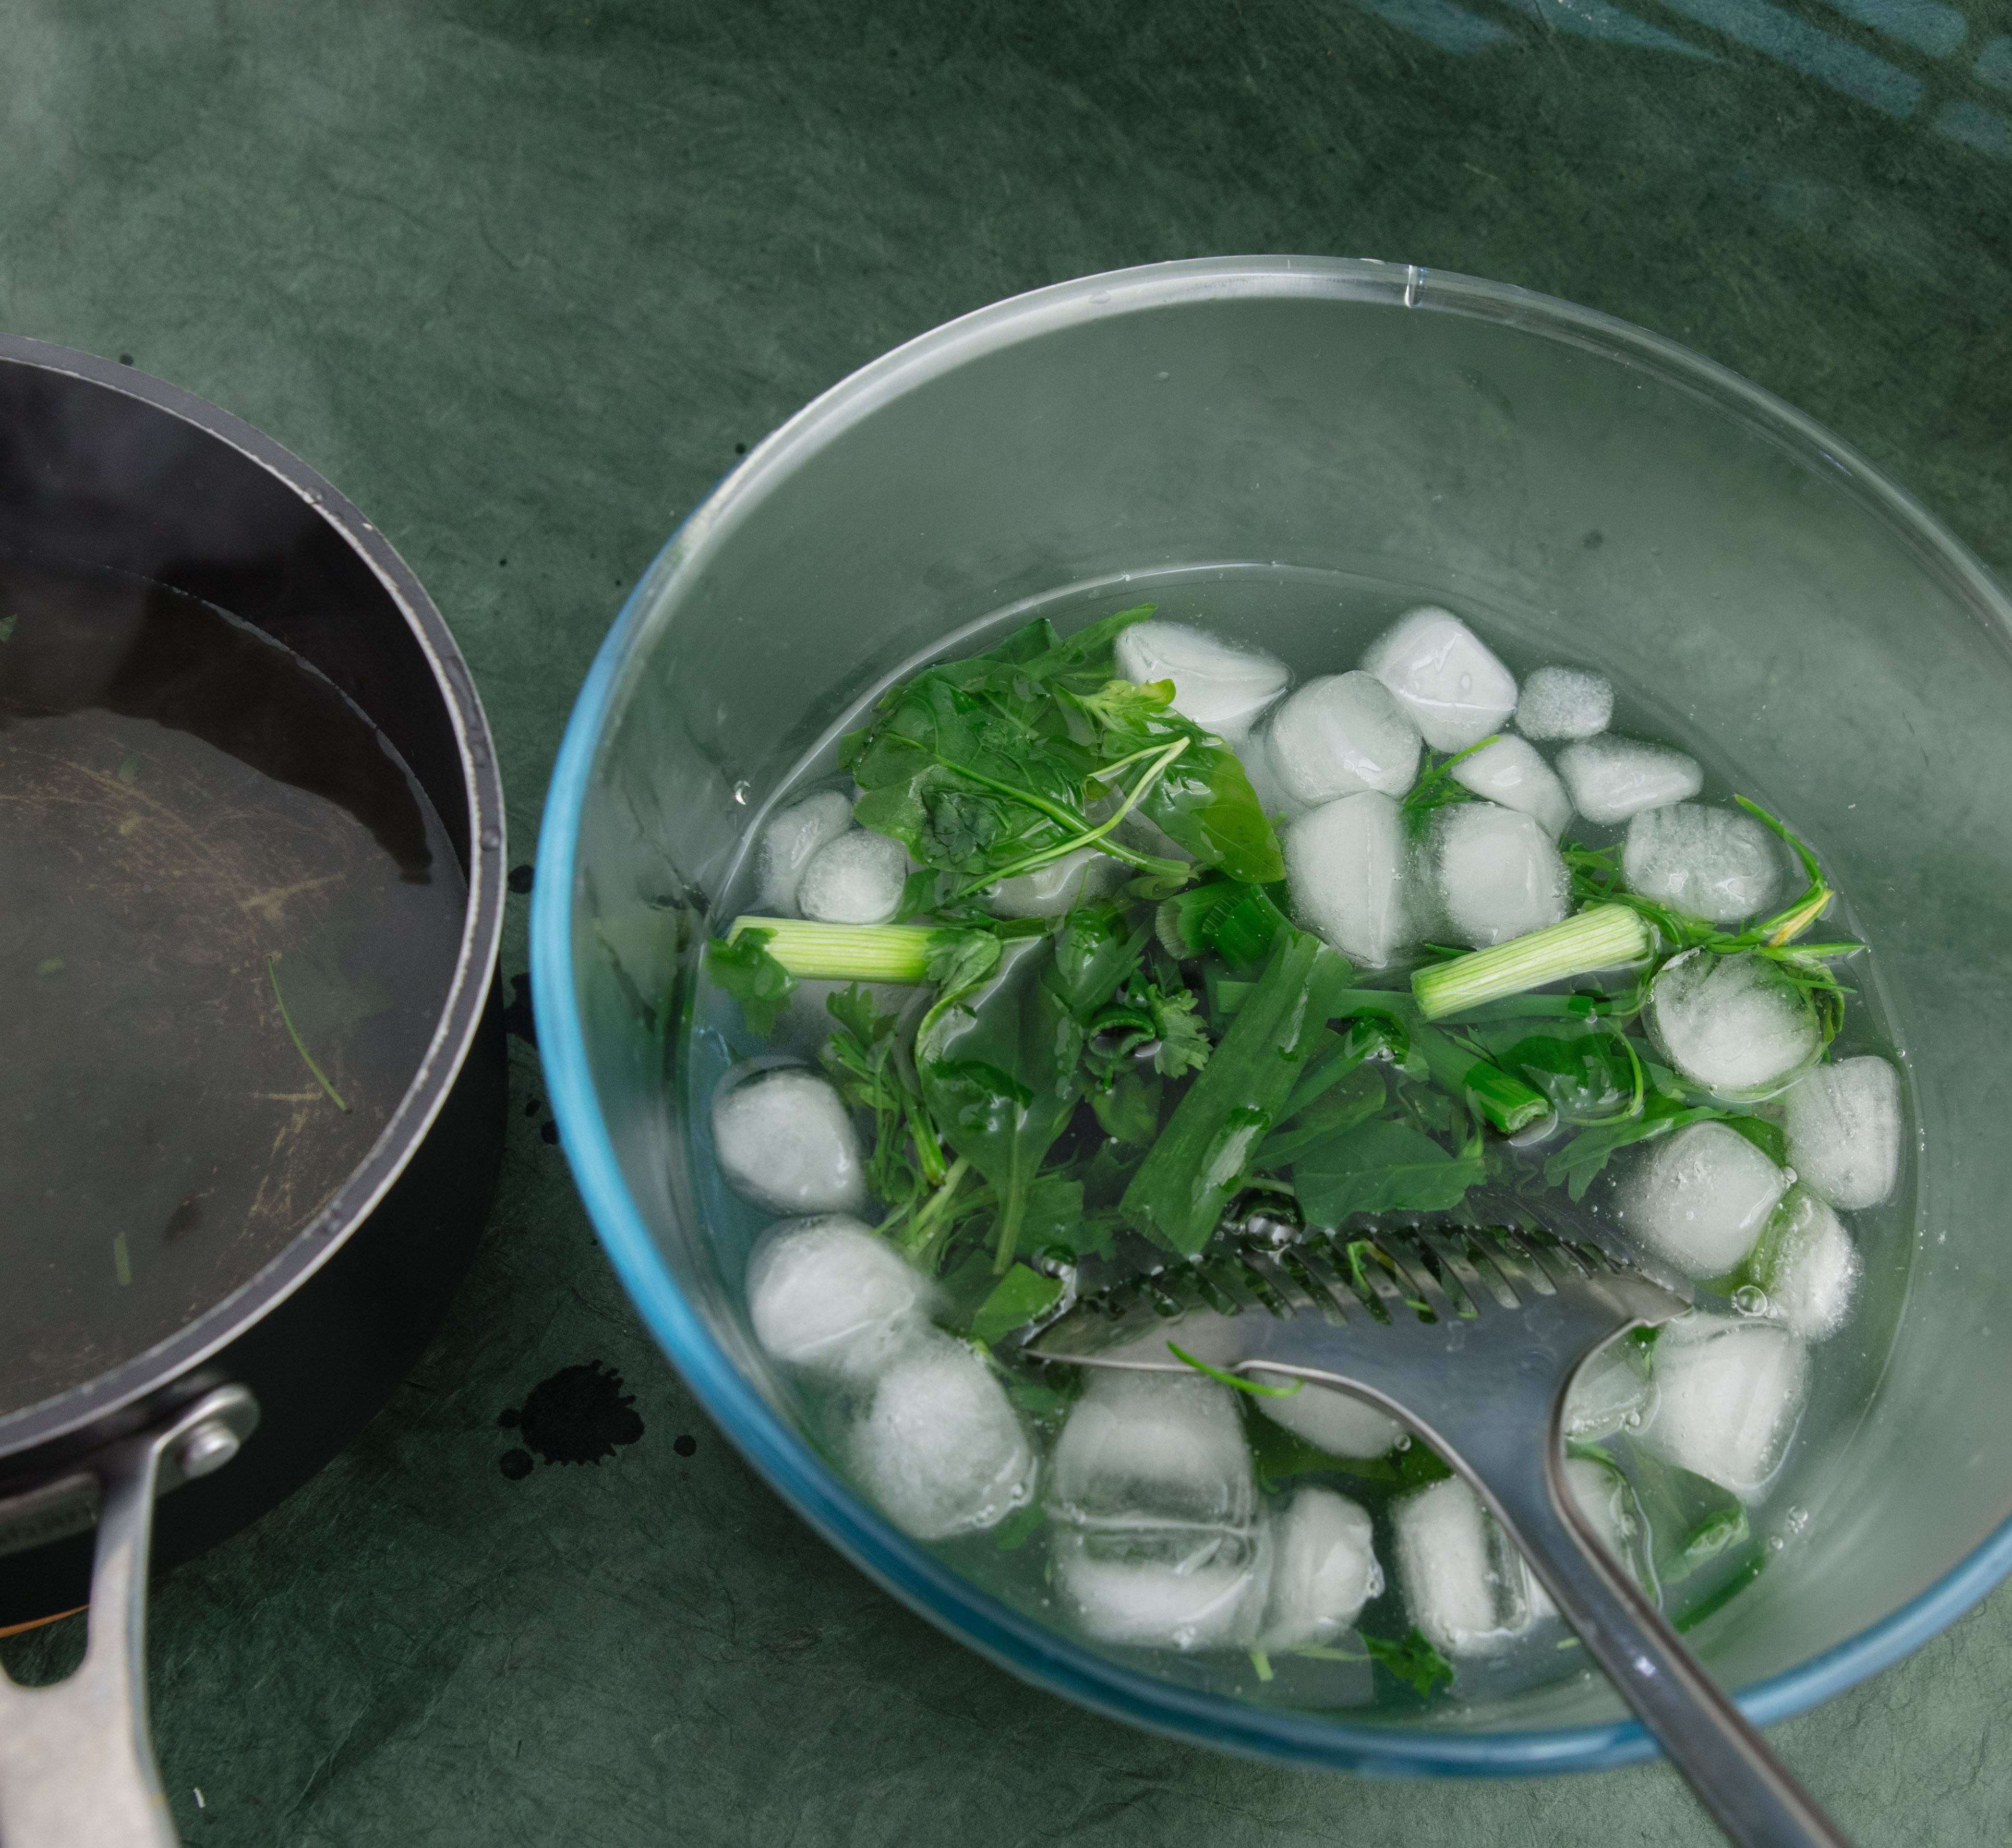 Ice-water bath and blanched green pesto ingredients.